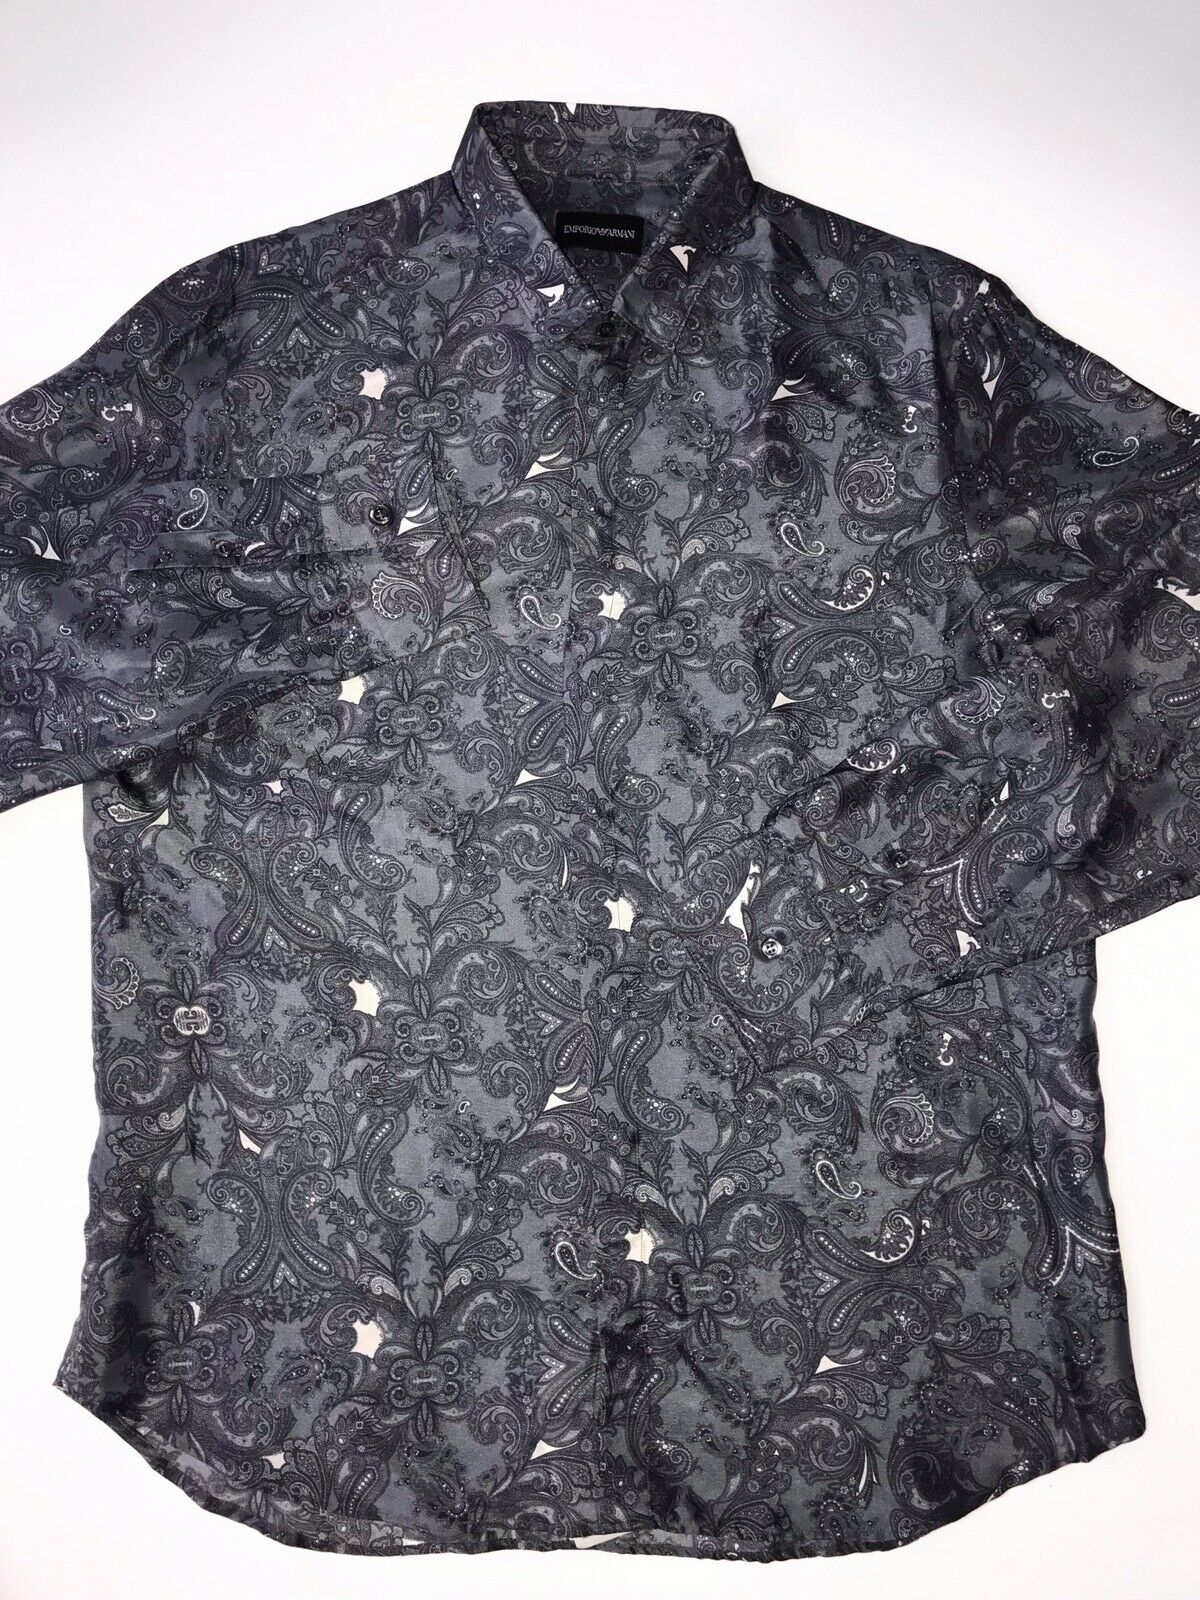 NWT $675 Emporio Armani Men's Gray Silk Dress Shirt Size 39/15.5 T1CC2T